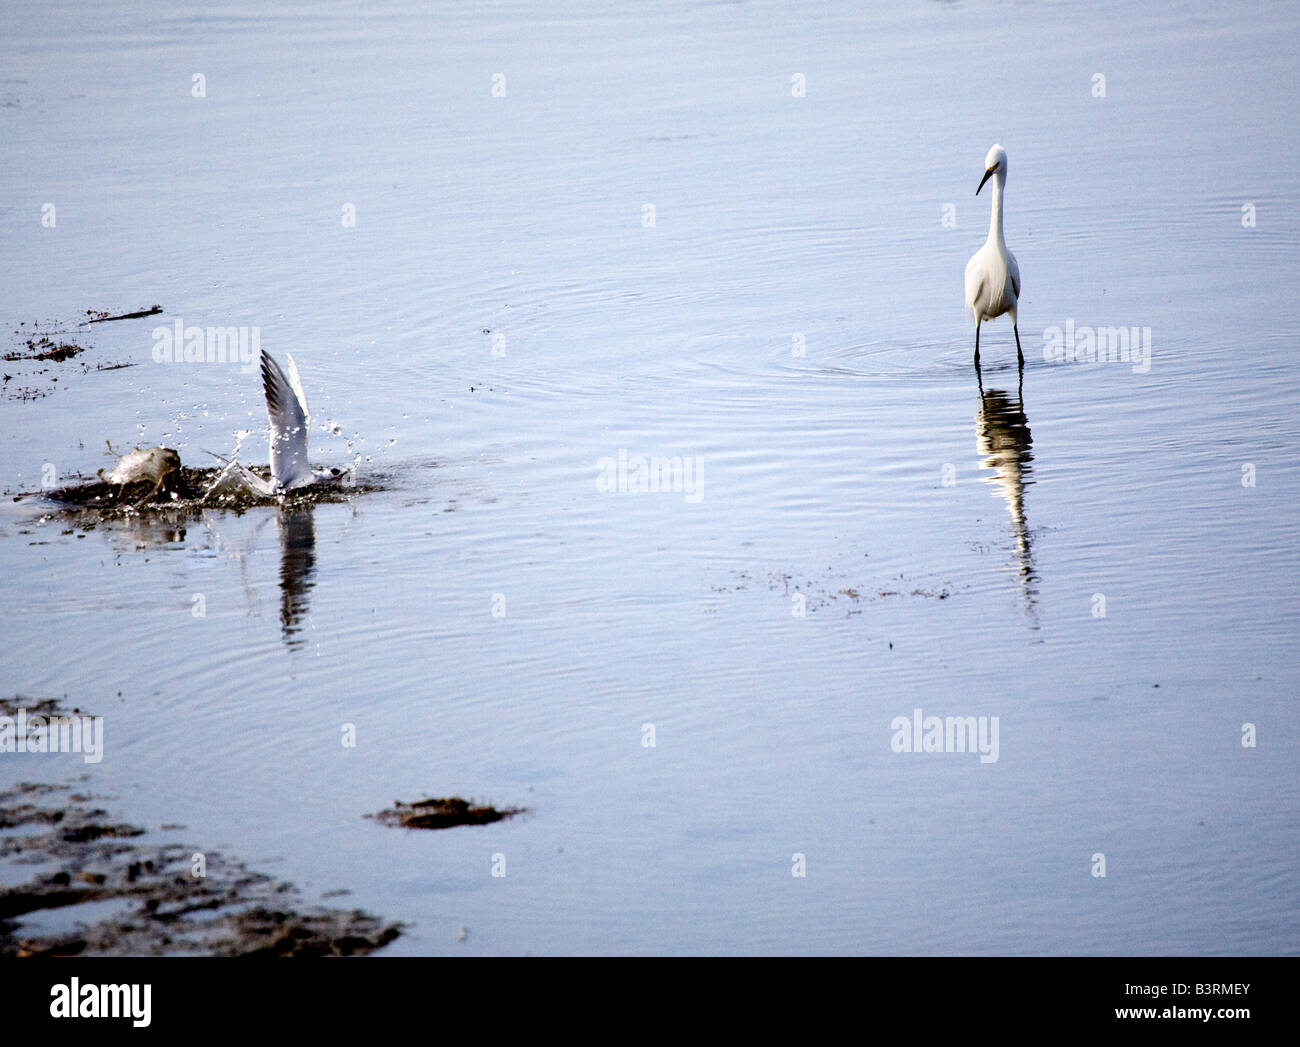 A Snowy Egret and Forster's Tern engaged in cooperative feeding. - Stock Image